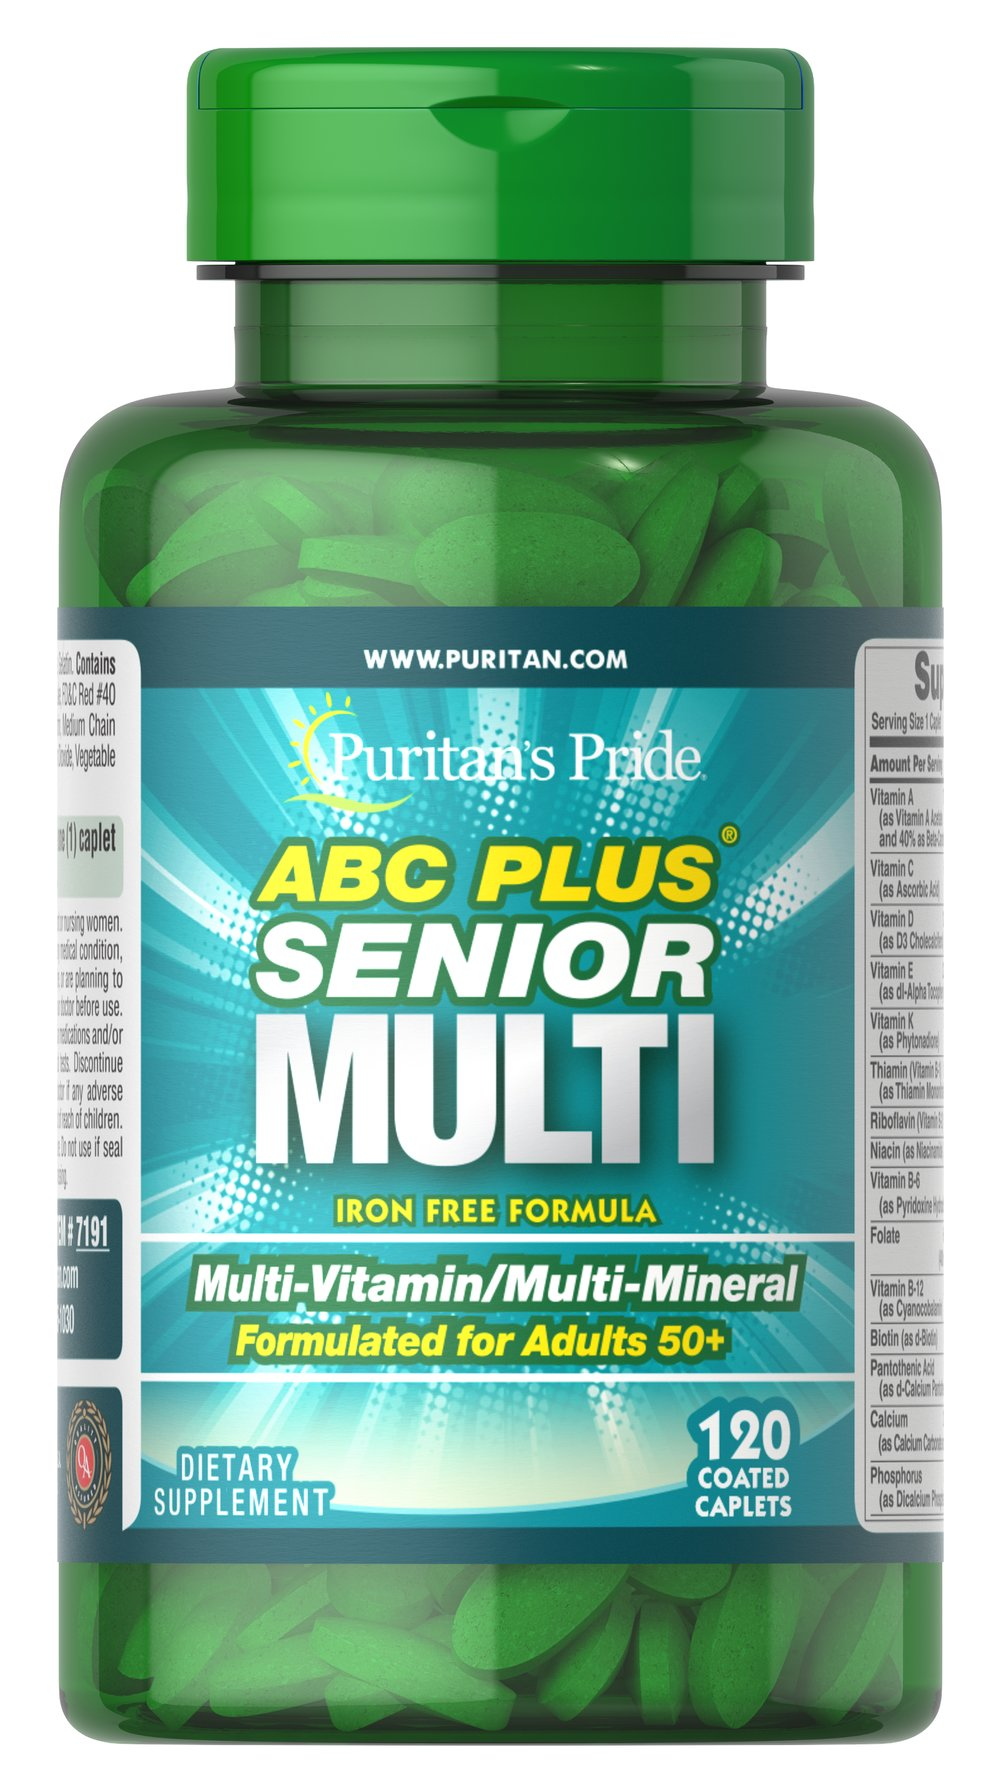 ABC Plus® Senior Multivitamin Multi-Mineral Formula  120 Caplets  $17.99